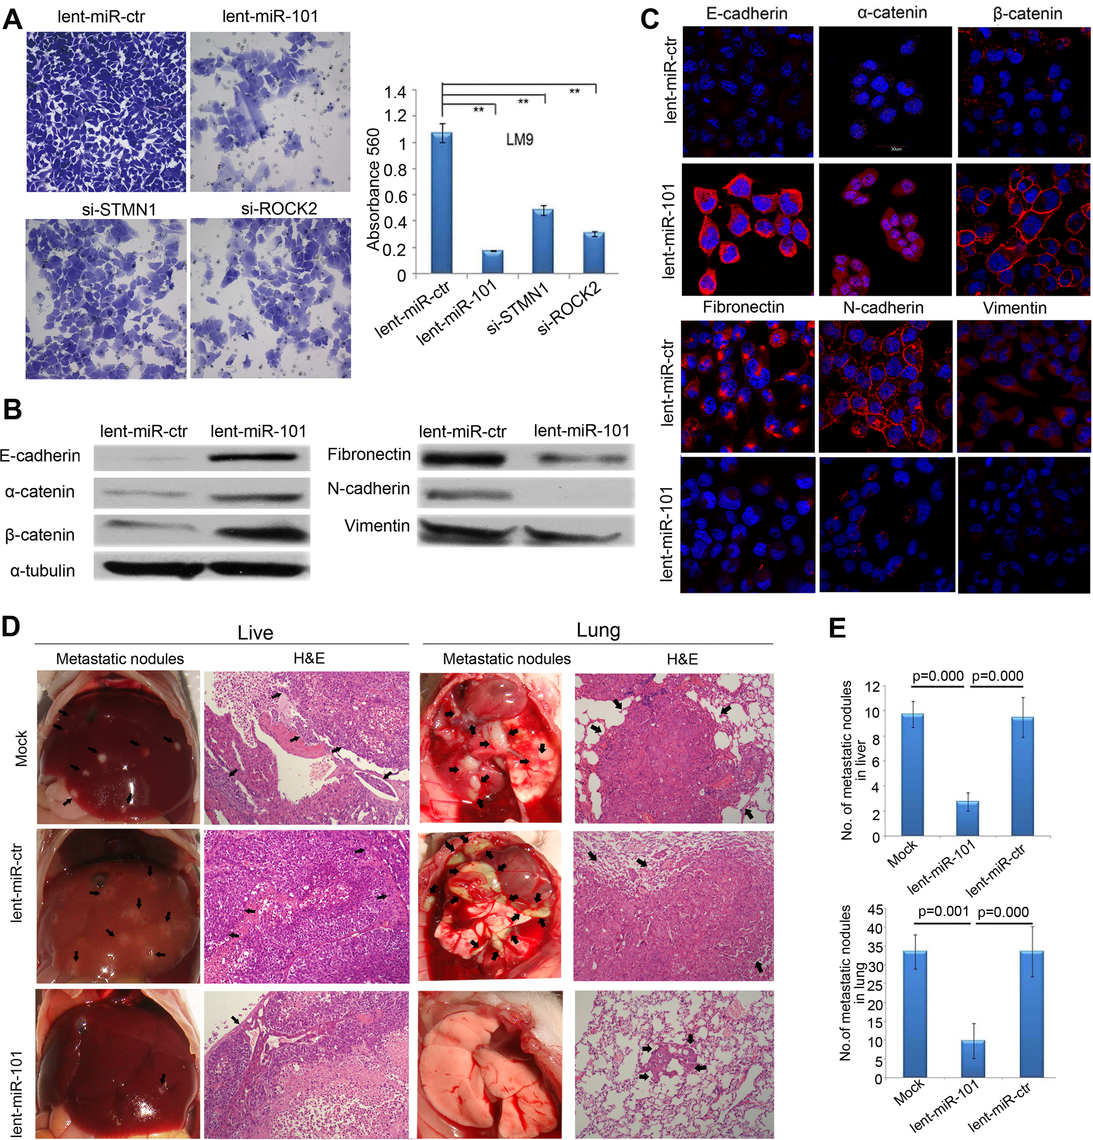 Enforced overexpression of miR-101 inhibits HCC LM9 cells invasion and EMT <i>in vitro</i> and reduces metastasis <i>in vivo</i>.